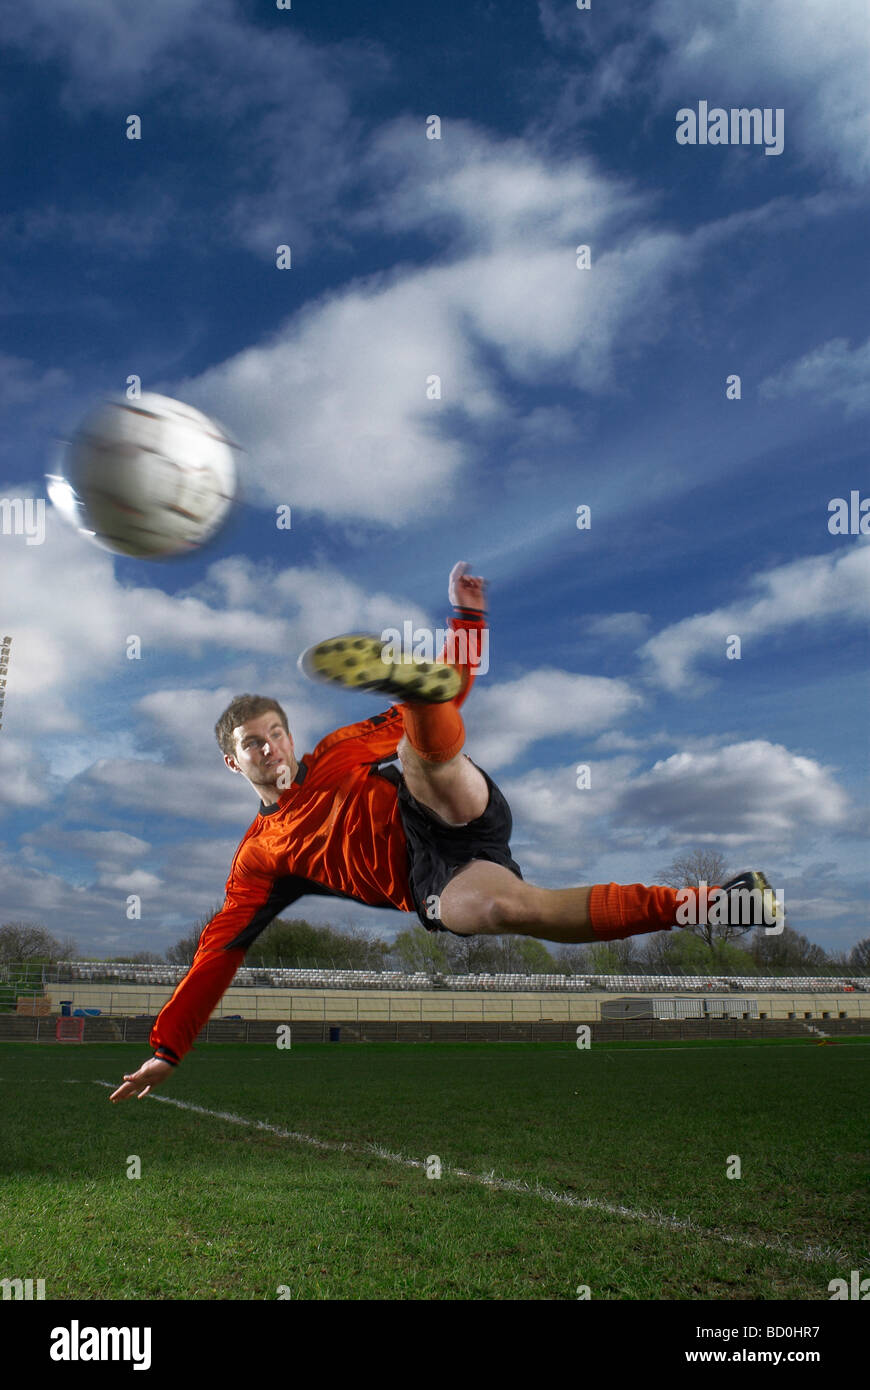 footballer volleying ball mid air - Stock Image